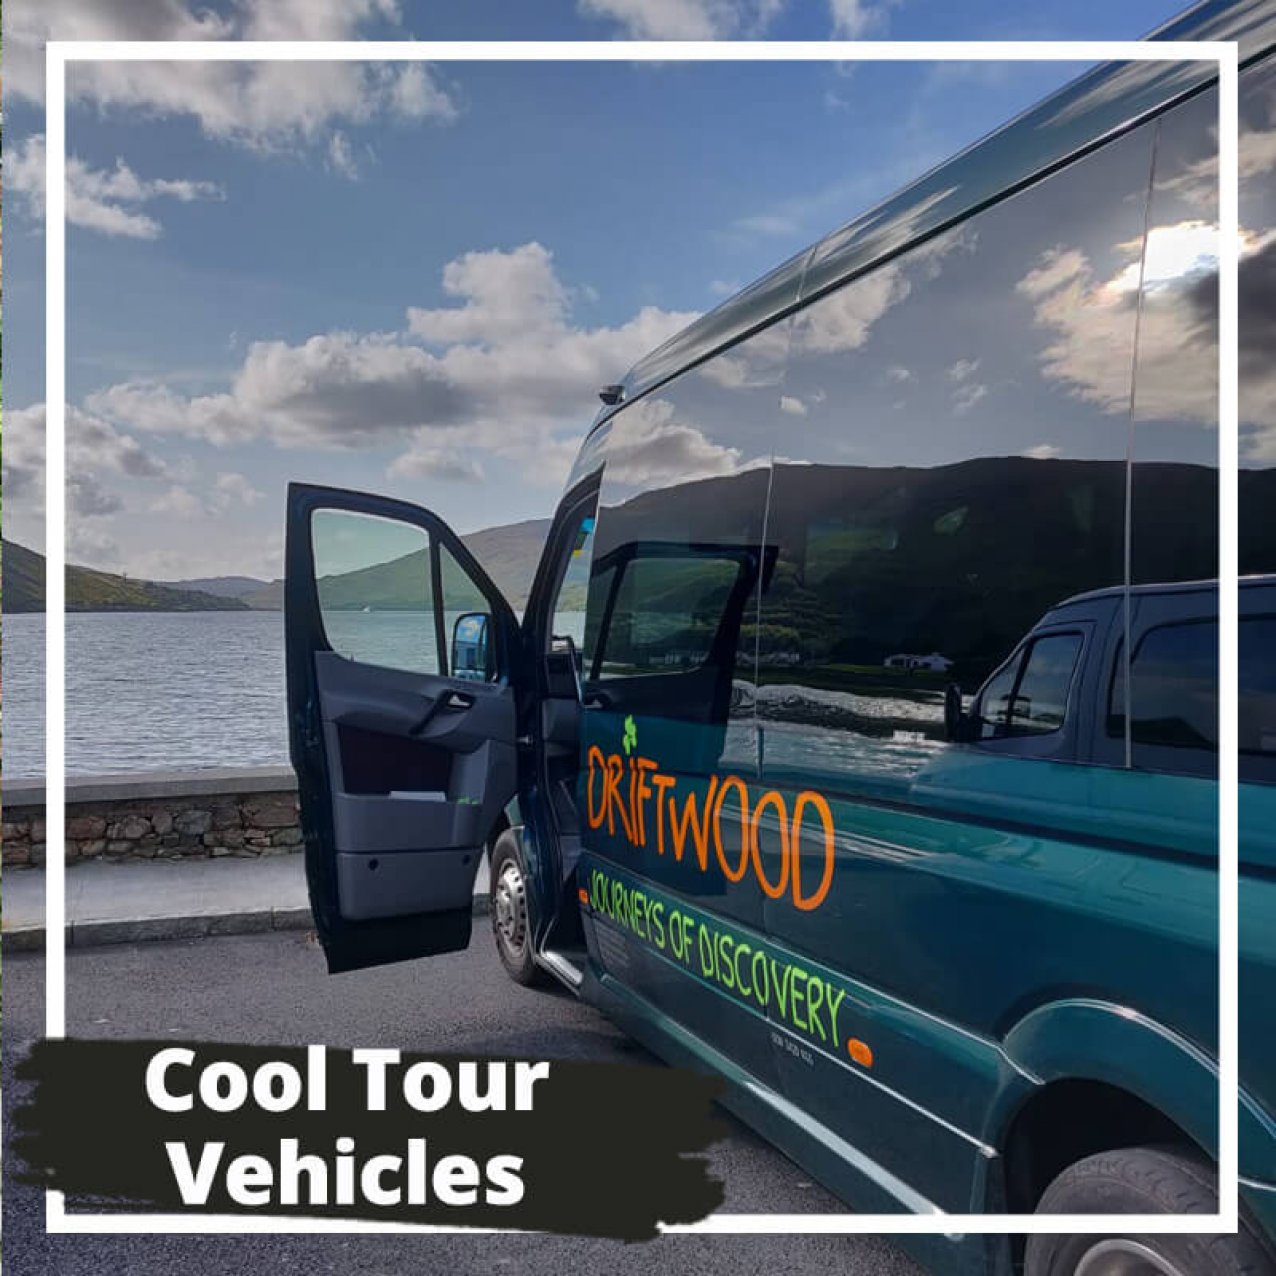 Cool Tour Vehicles with Driftwood bus in Ireland